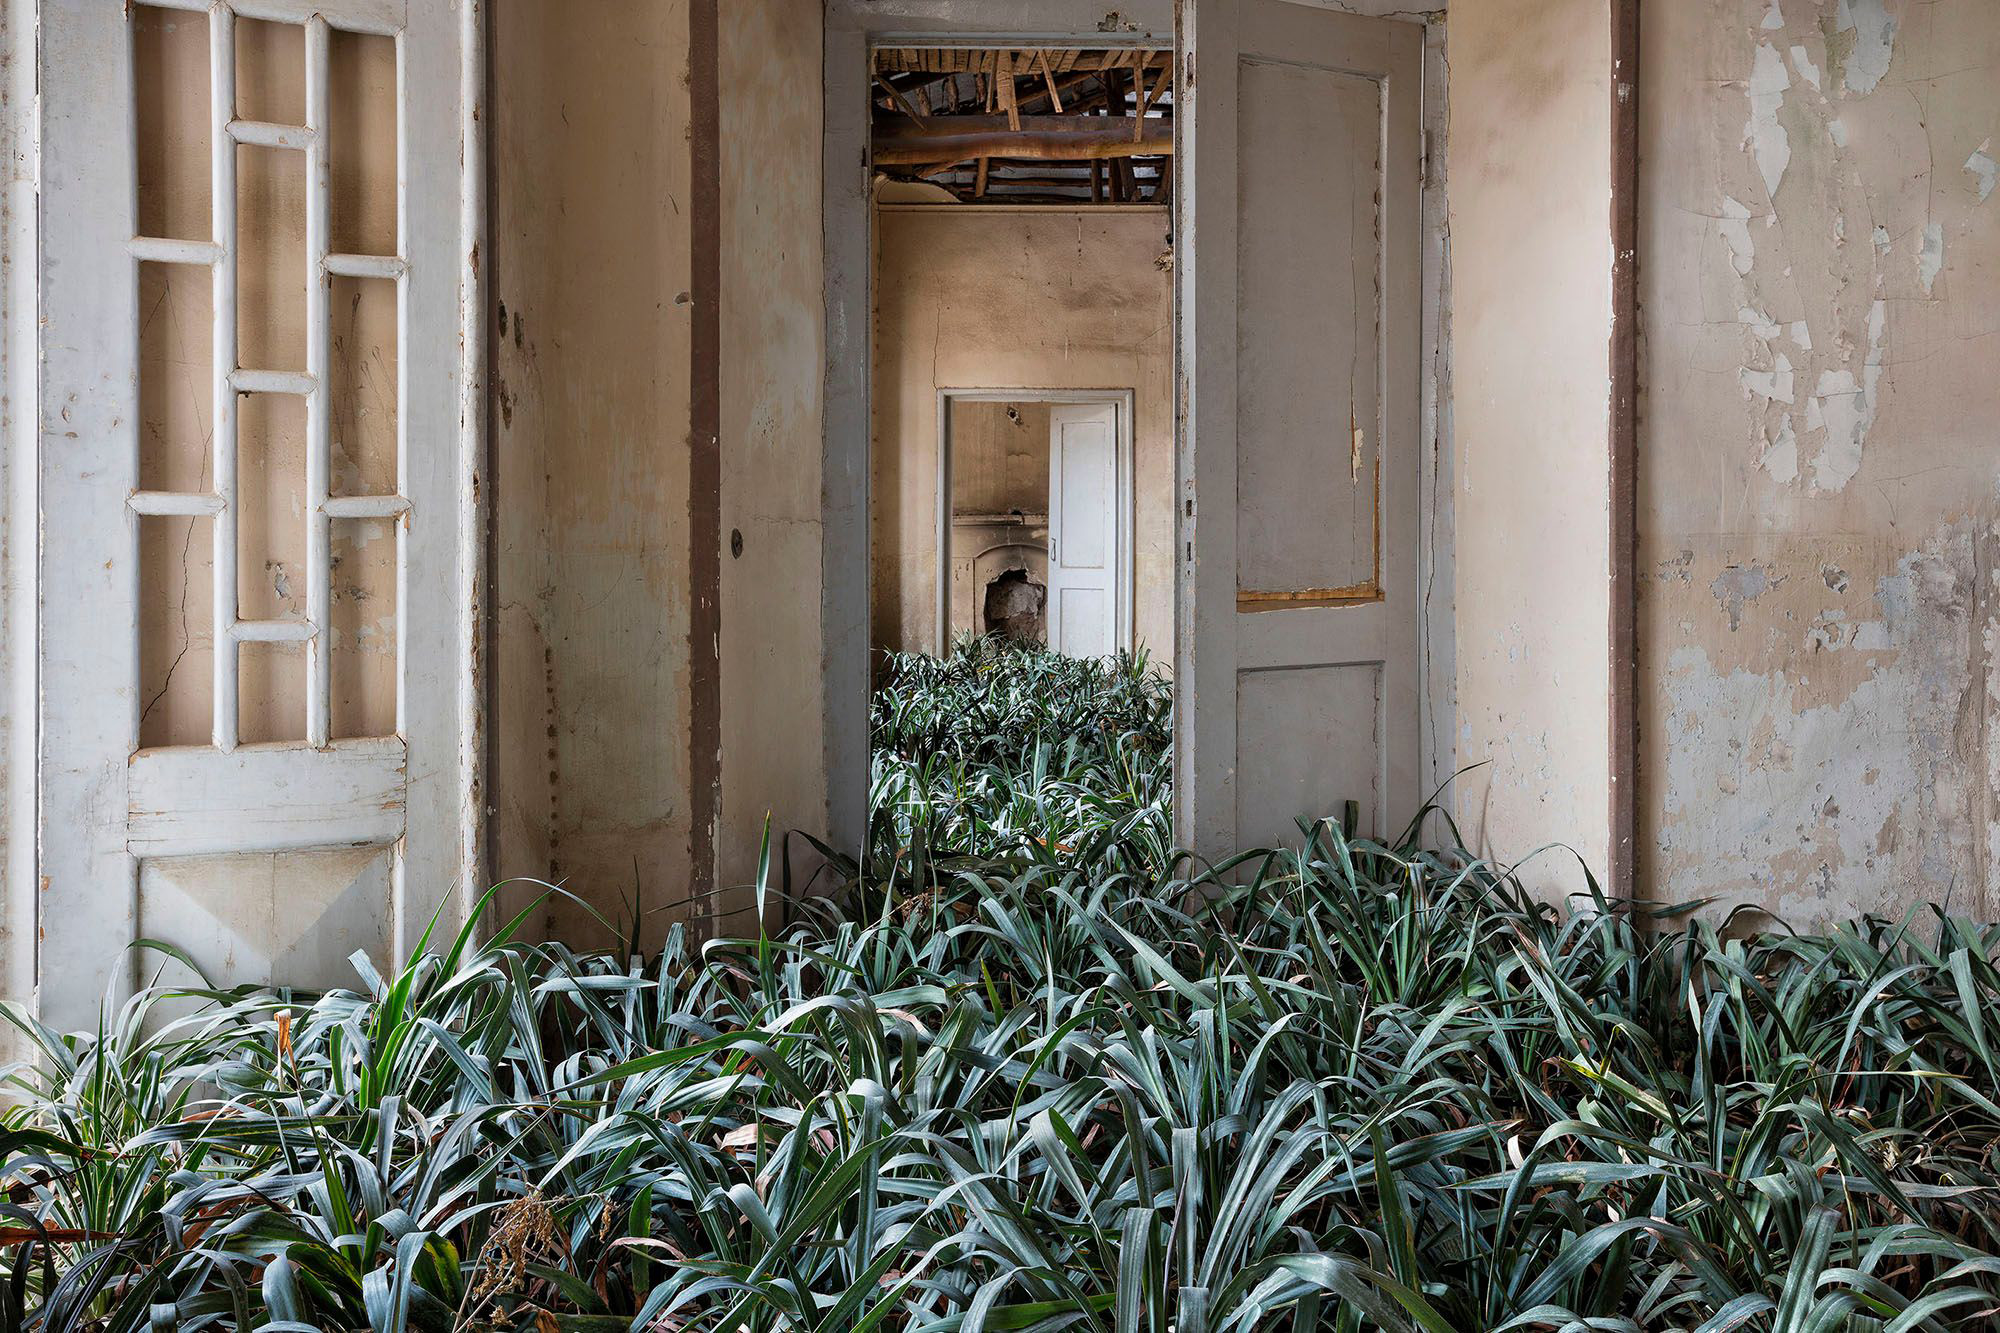 Nature Thrives in Tehran's Abandoned Courtyards, Staircases, and Bedrooms in a Photo Series by Gohar Dashti